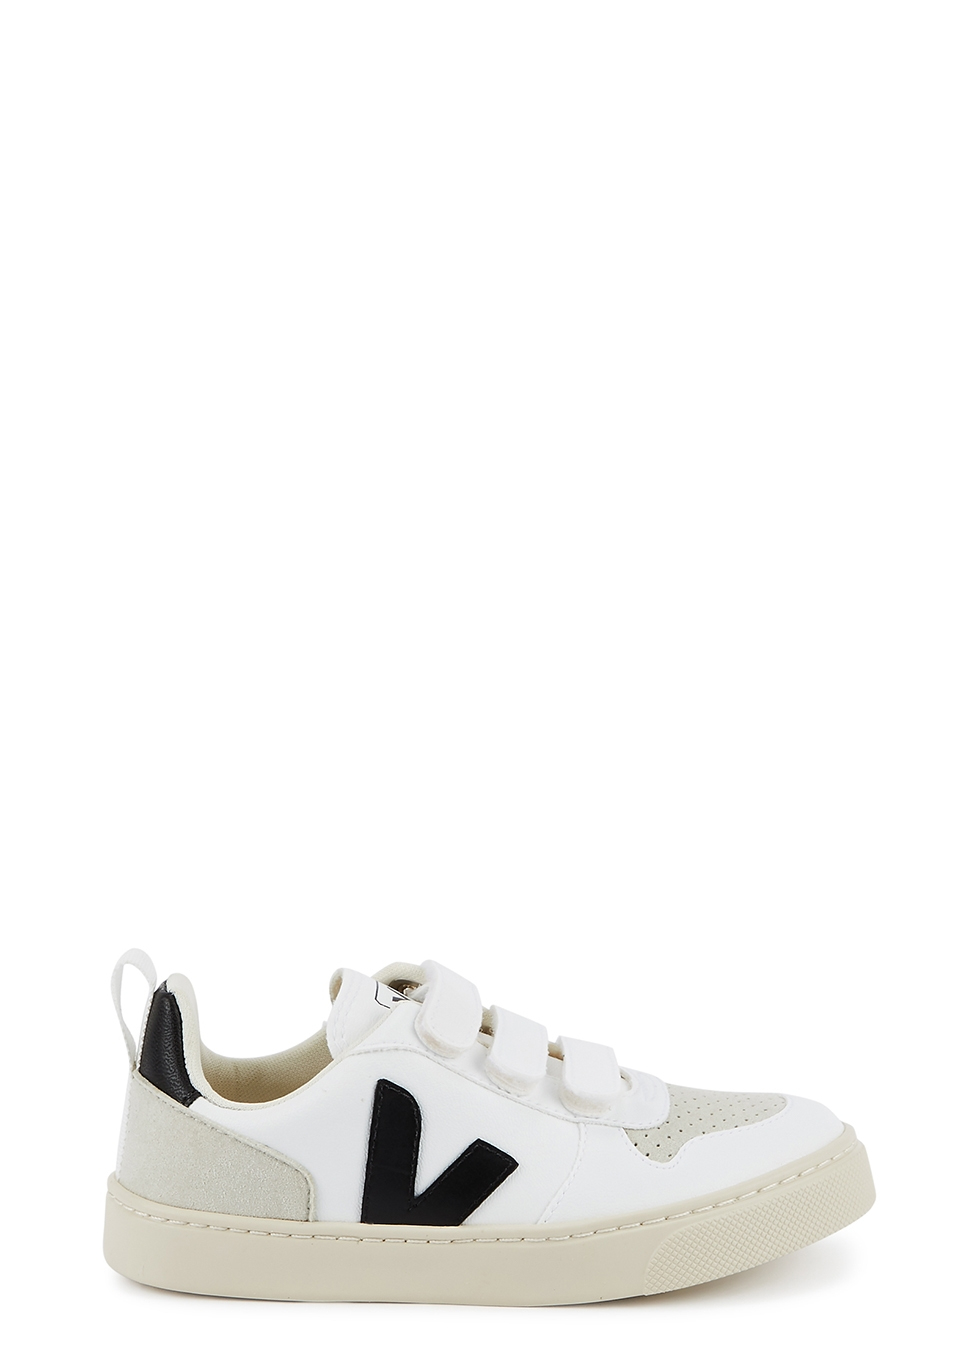 V-10 white leather sneakers